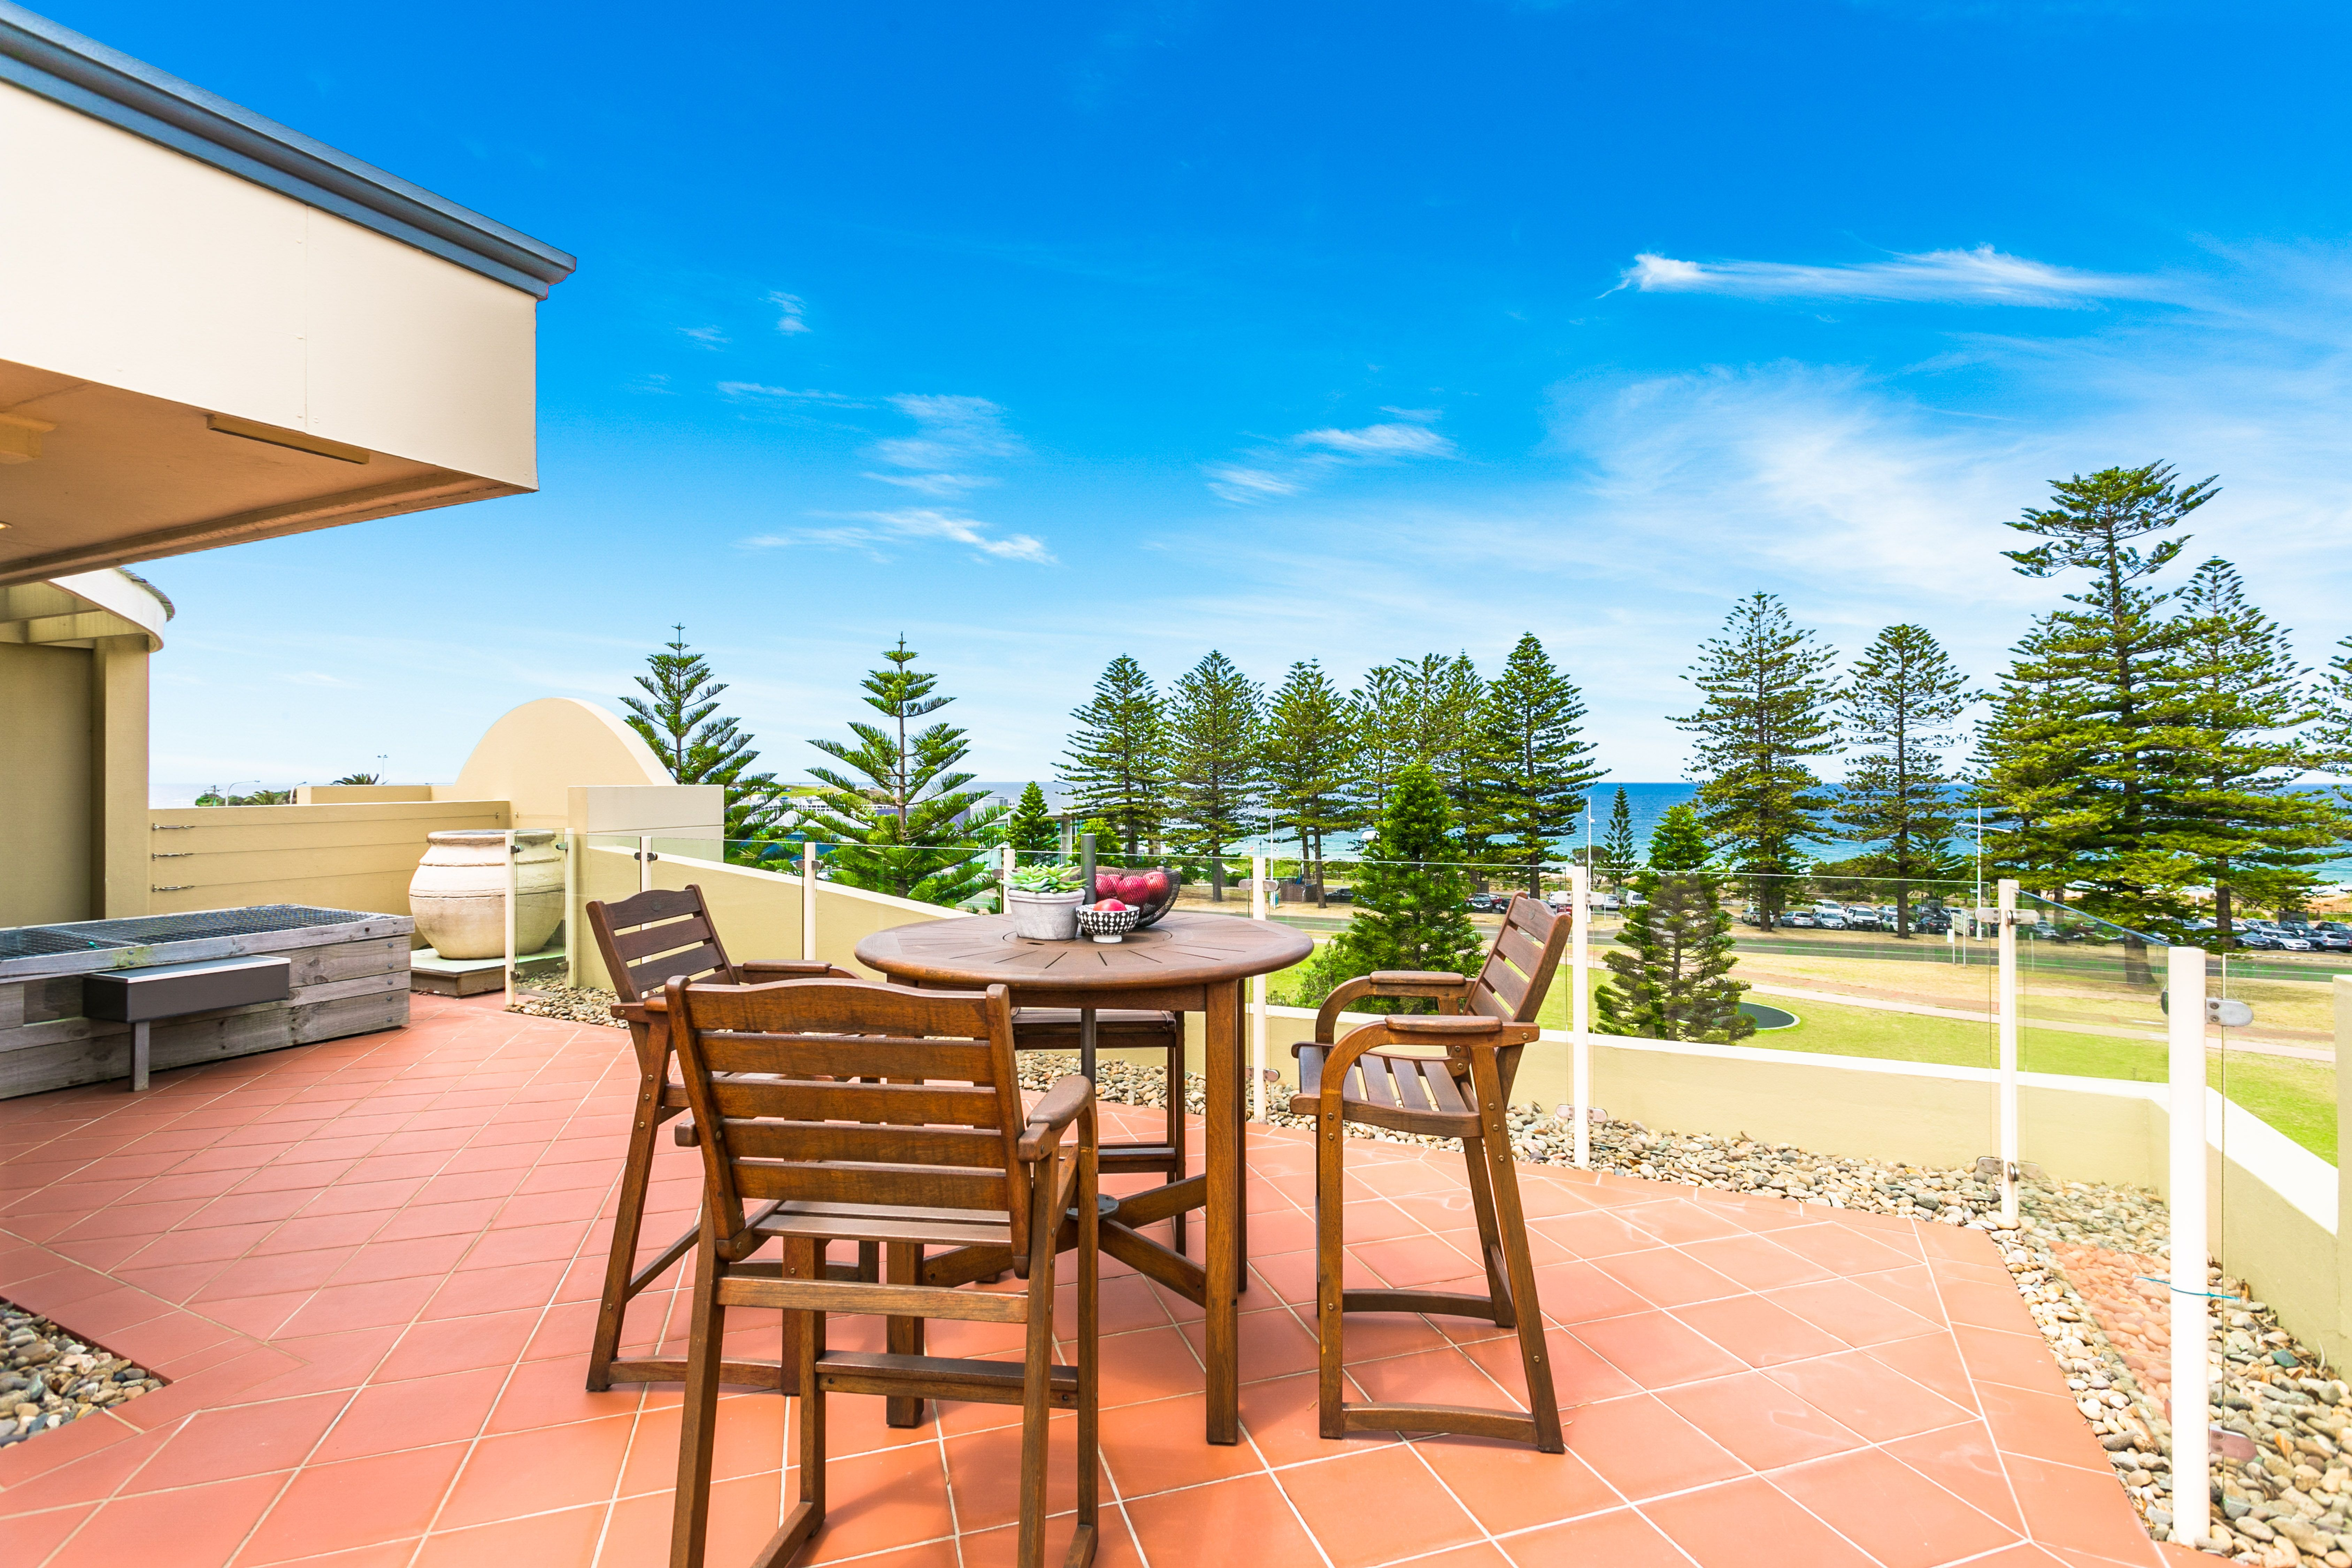 8/4-6 Hector Street, Wollongong NSW 2500